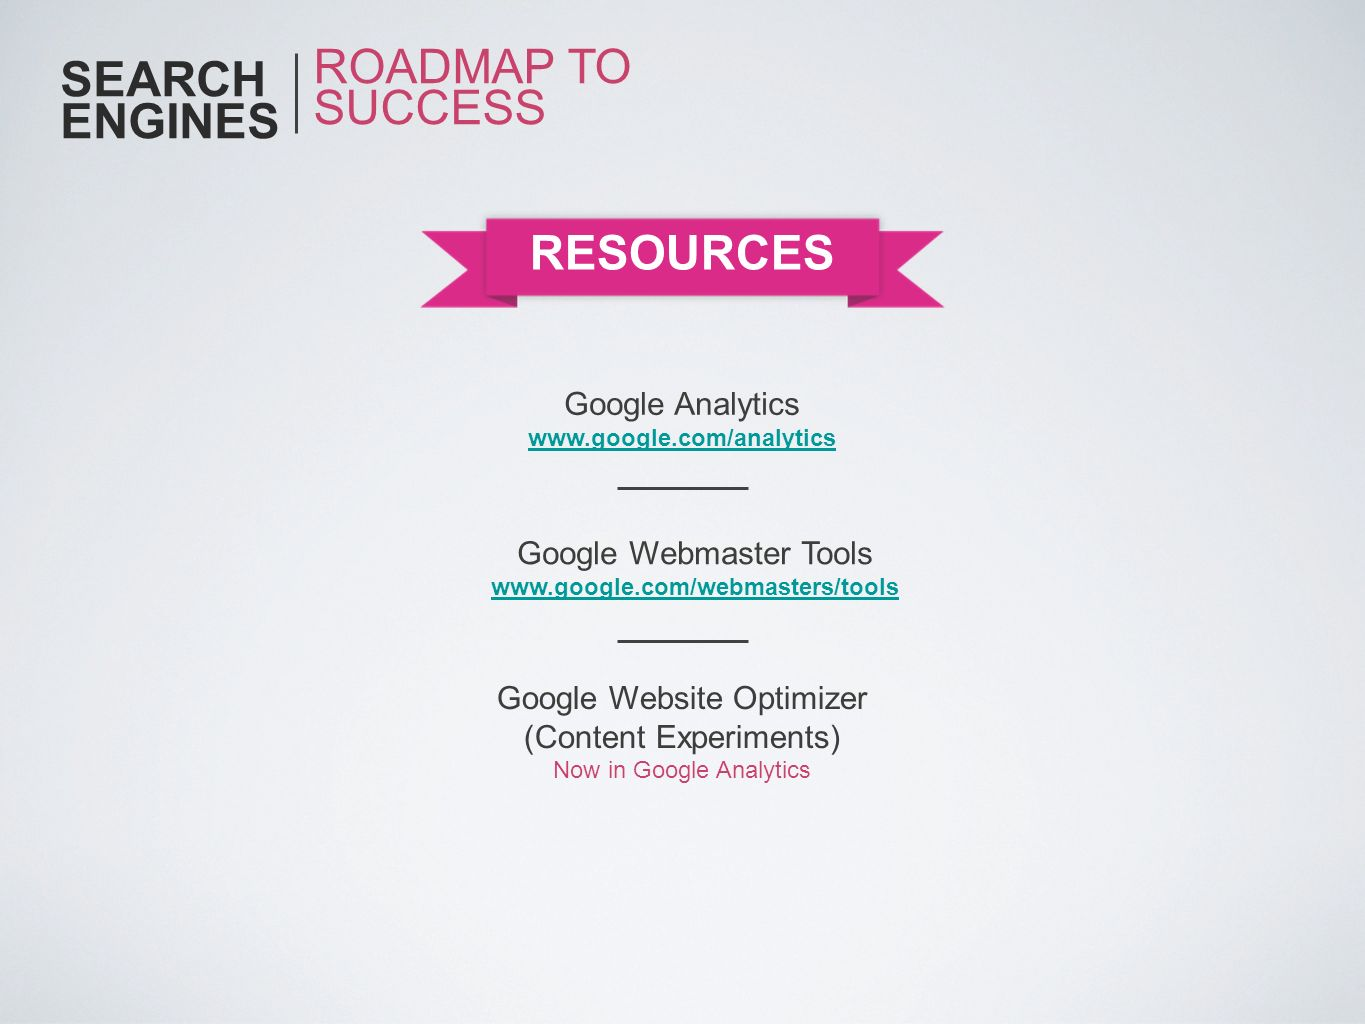 SEARCH ENGINES RESOURCES ROADMAP TO SUCCESS Google Analytics www.google.com/analytics Google Website Optimizer (Content Experiments) Now in Google Ana